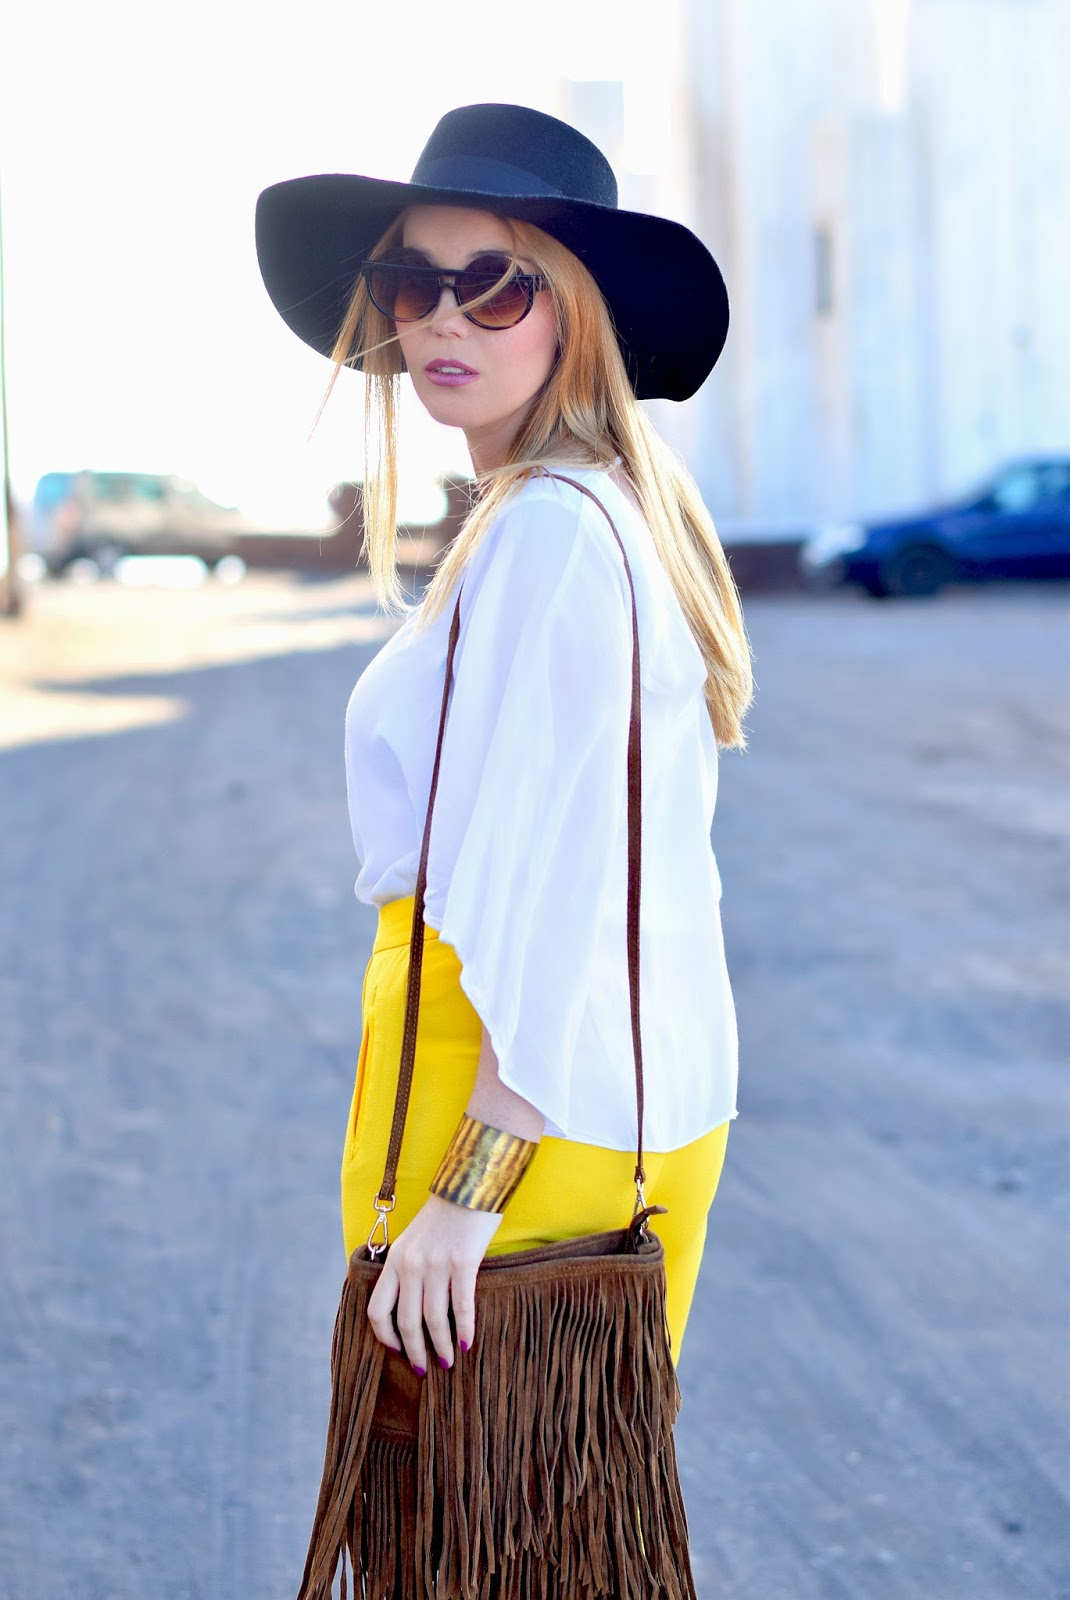 nery hdez, coachela look, fringes bag, freyrs, boho-chic